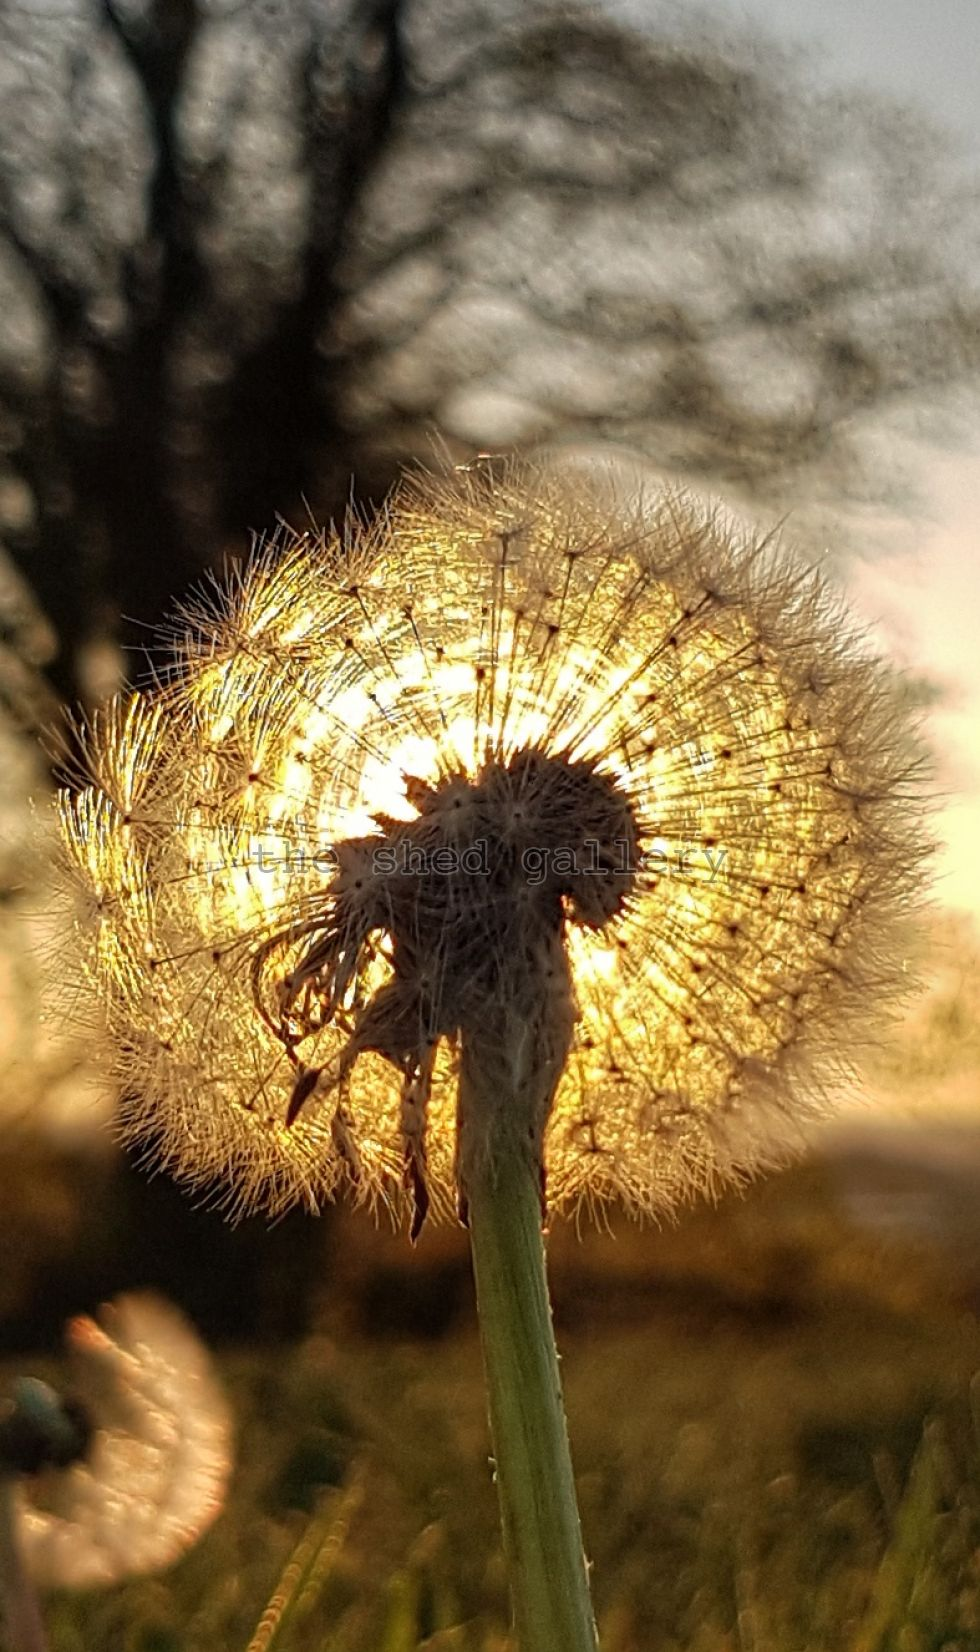 Dandylion at sunset